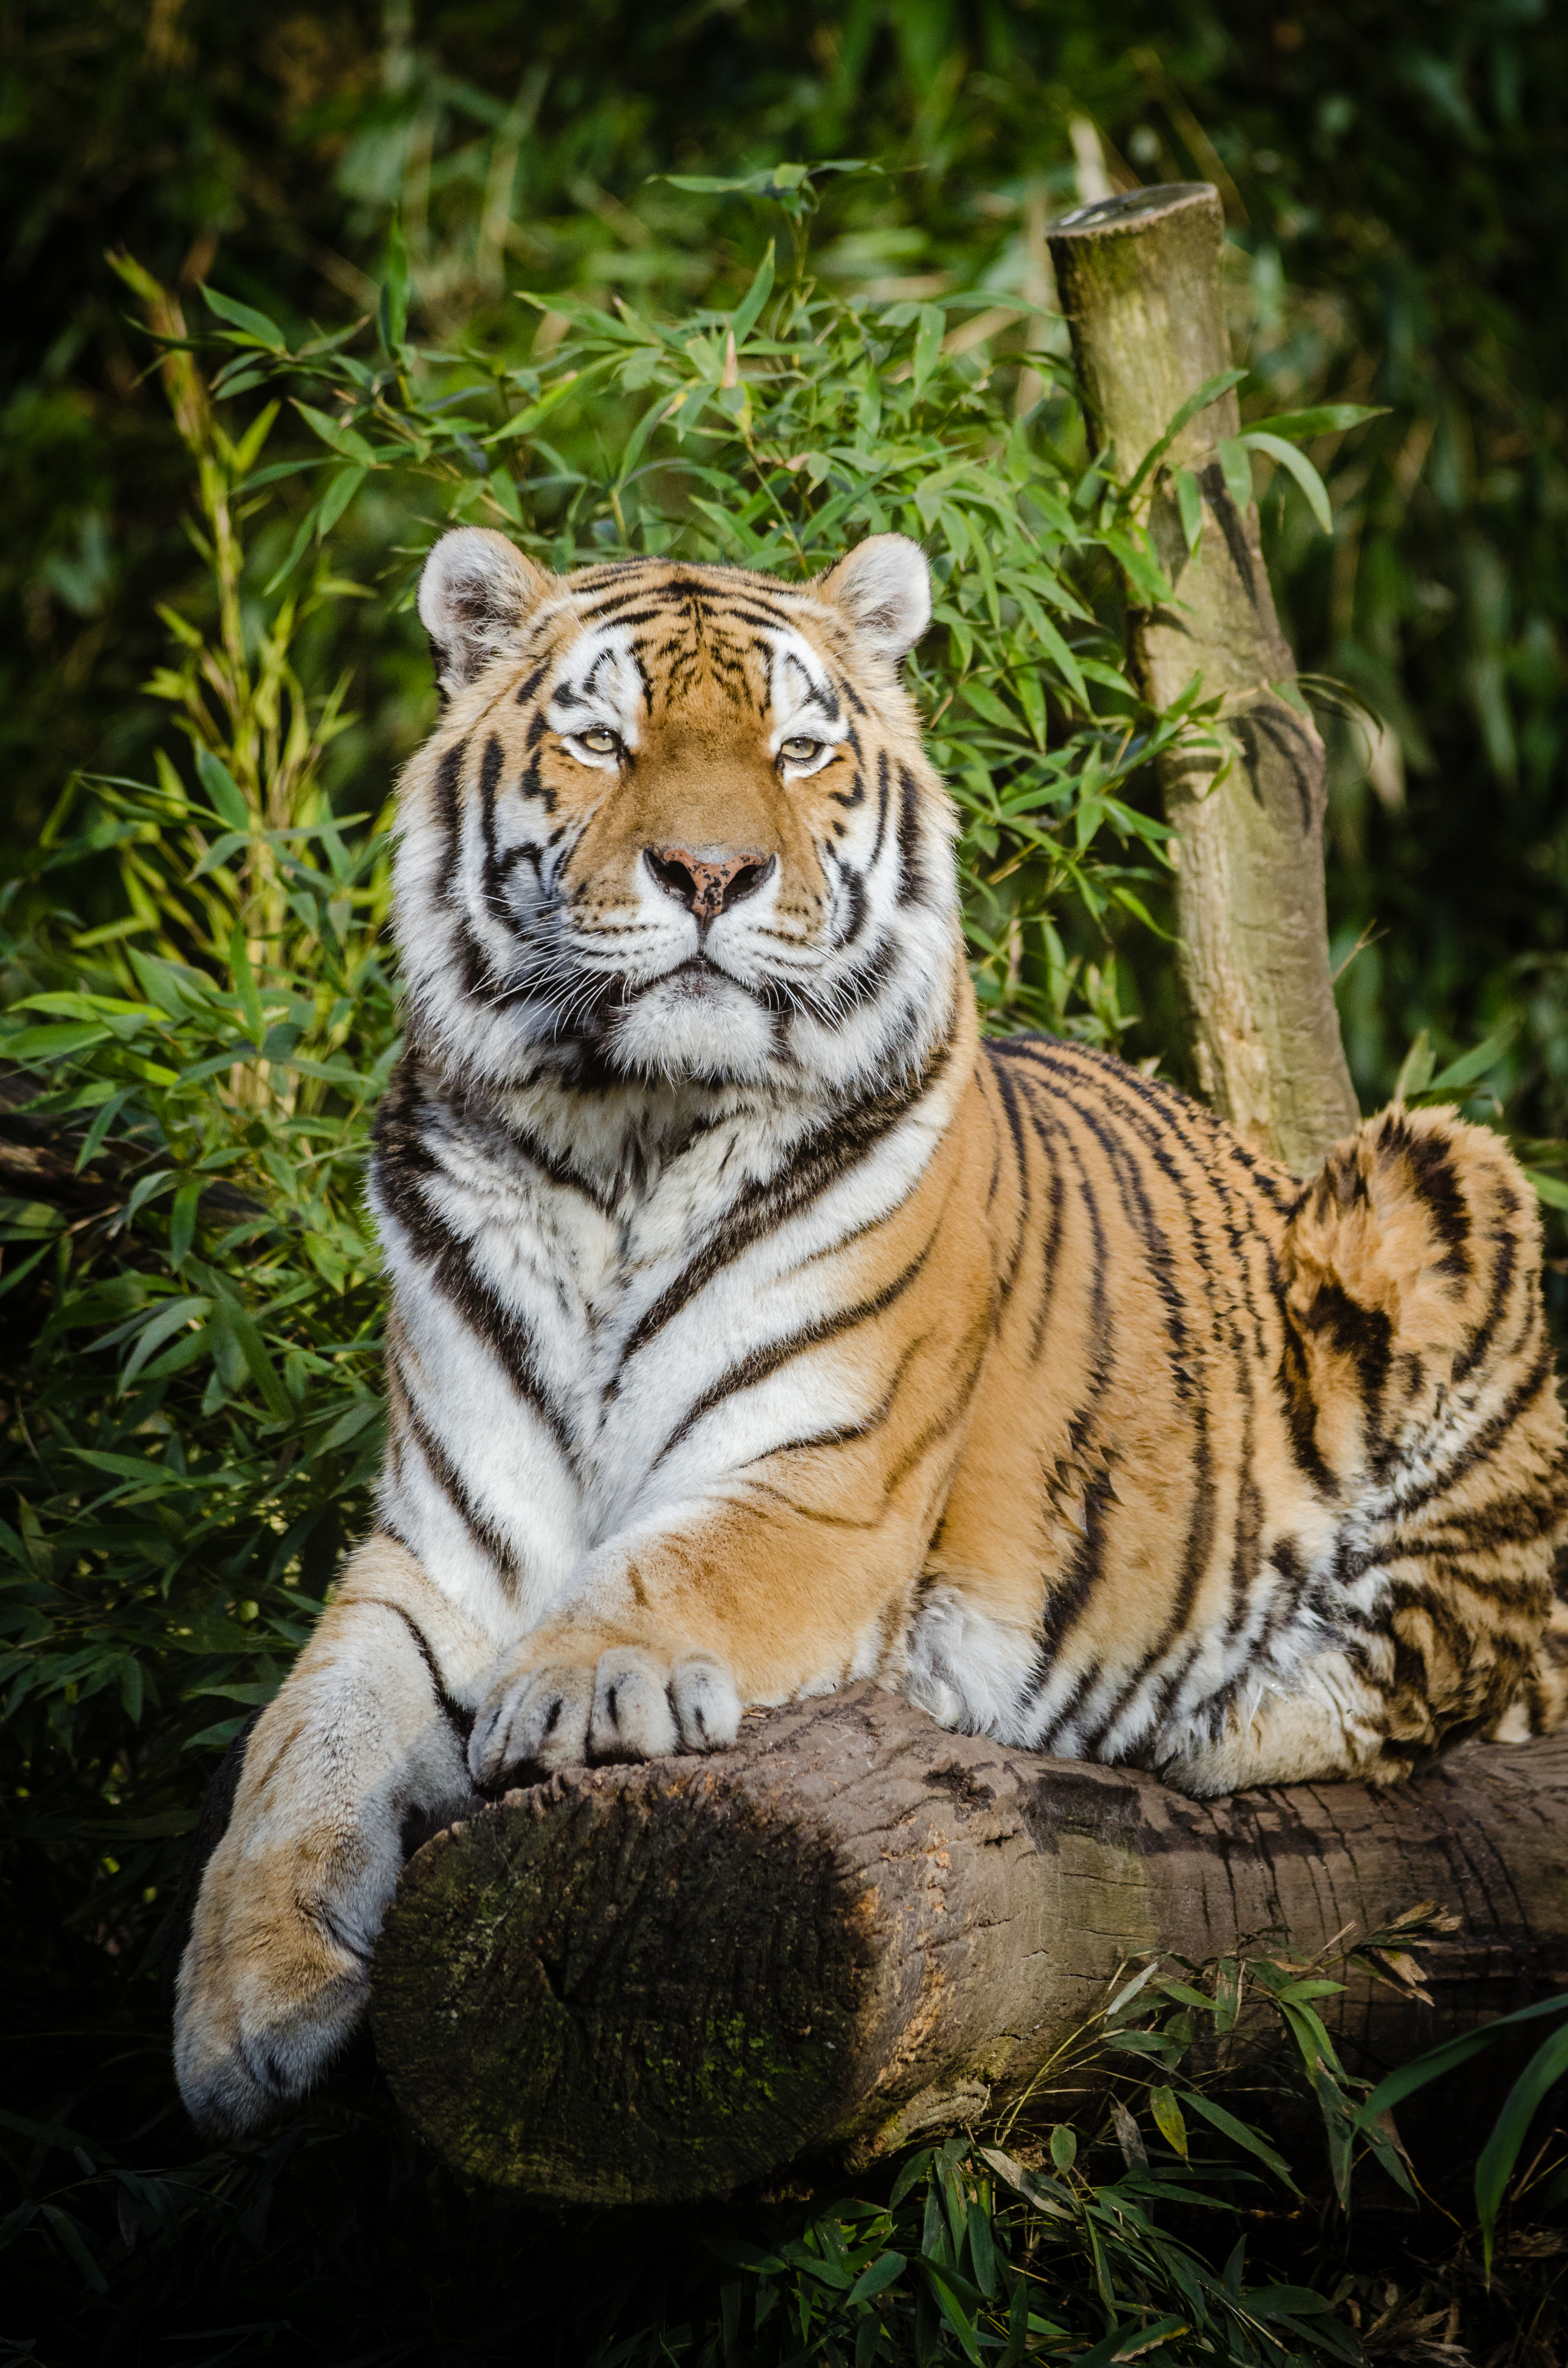 111666 download wallpaper Animals, Siberian Tiger, Tiger, Big Cat, Lies, Wildlife screensavers and pictures for free